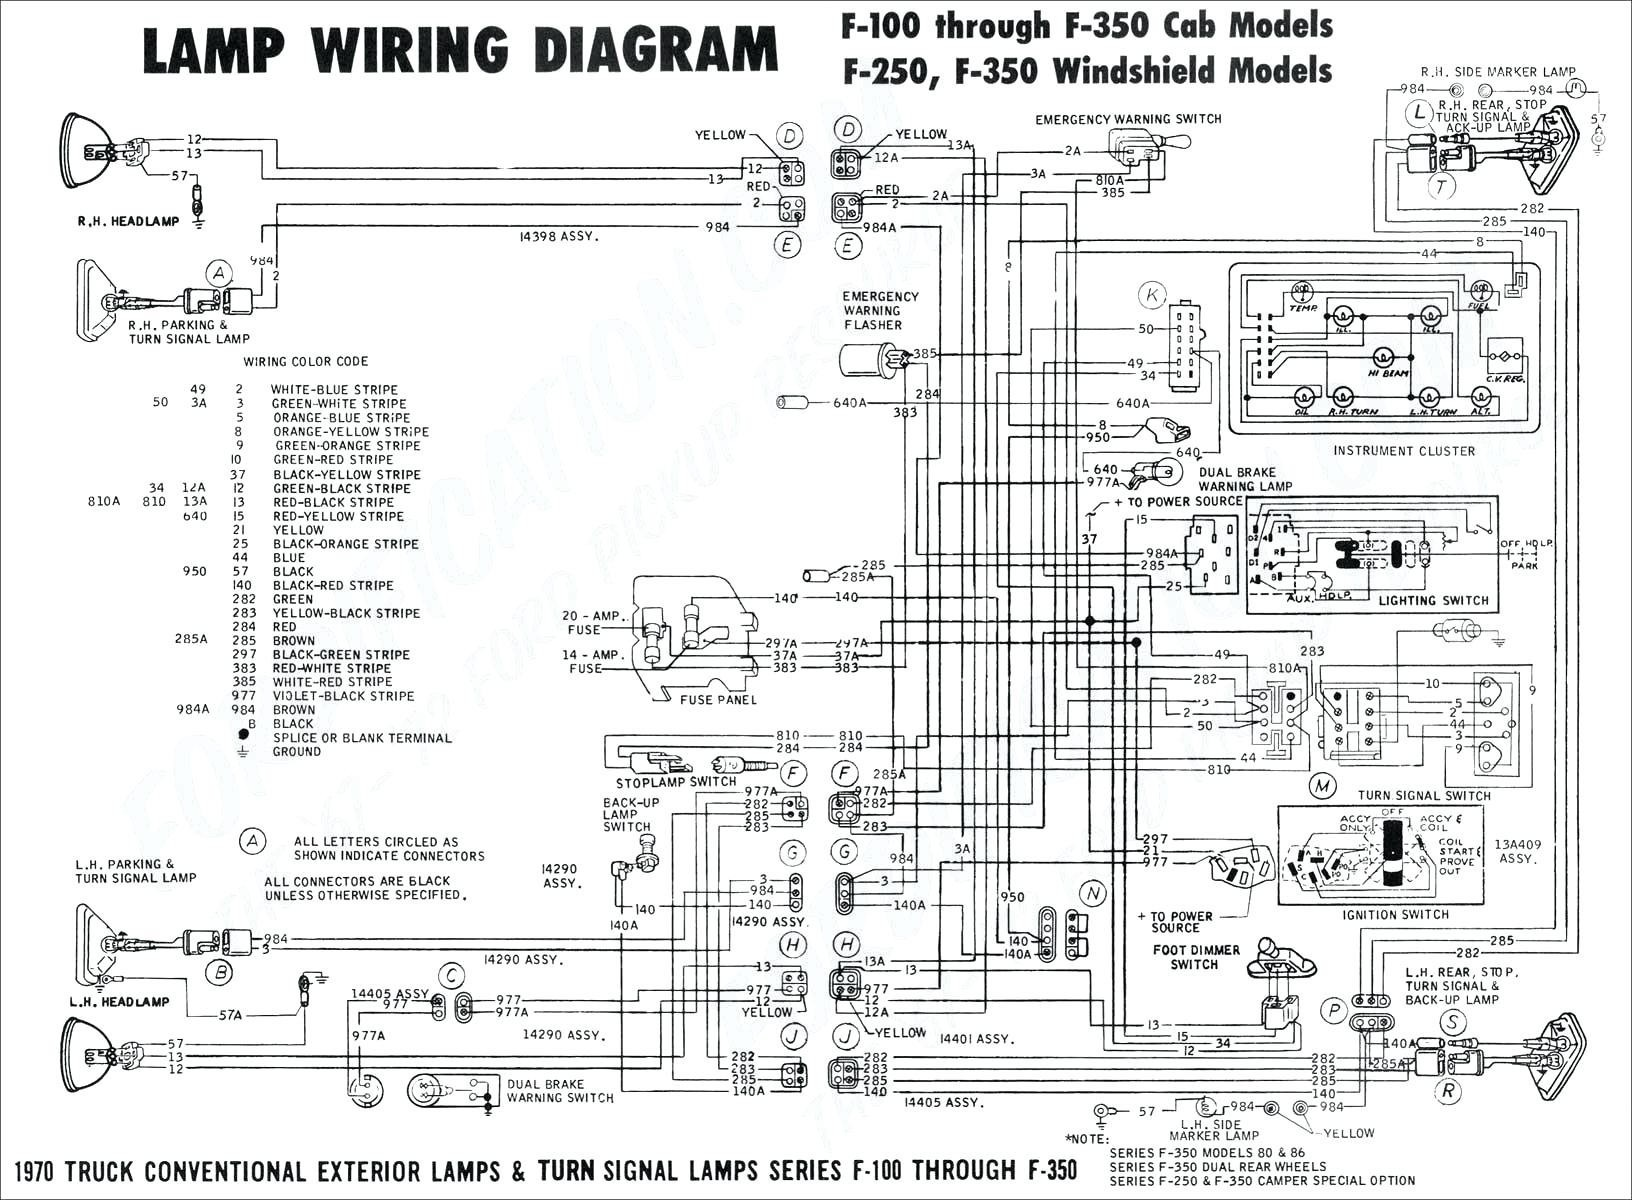 2006 Mini Cooper Engine Diagram 94 F350 Wiring Diagrams Layout Wiring Diagrams •